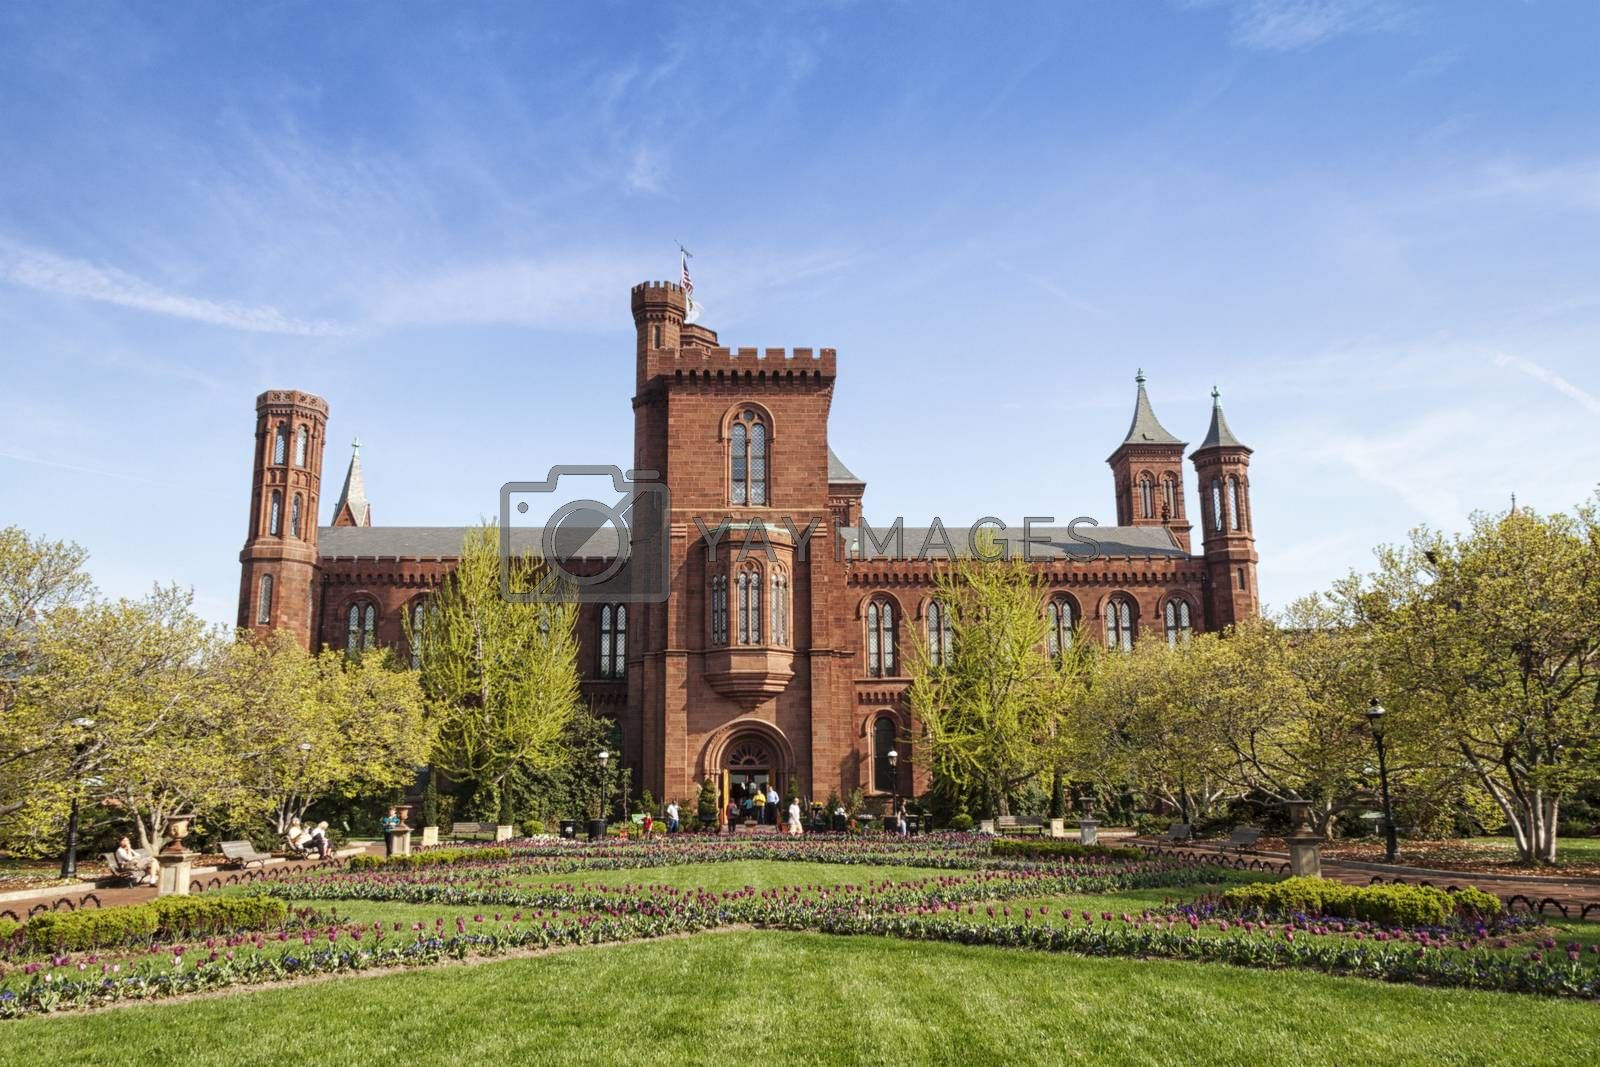 The original Smithsonian Institutional building in Washington, D.C.